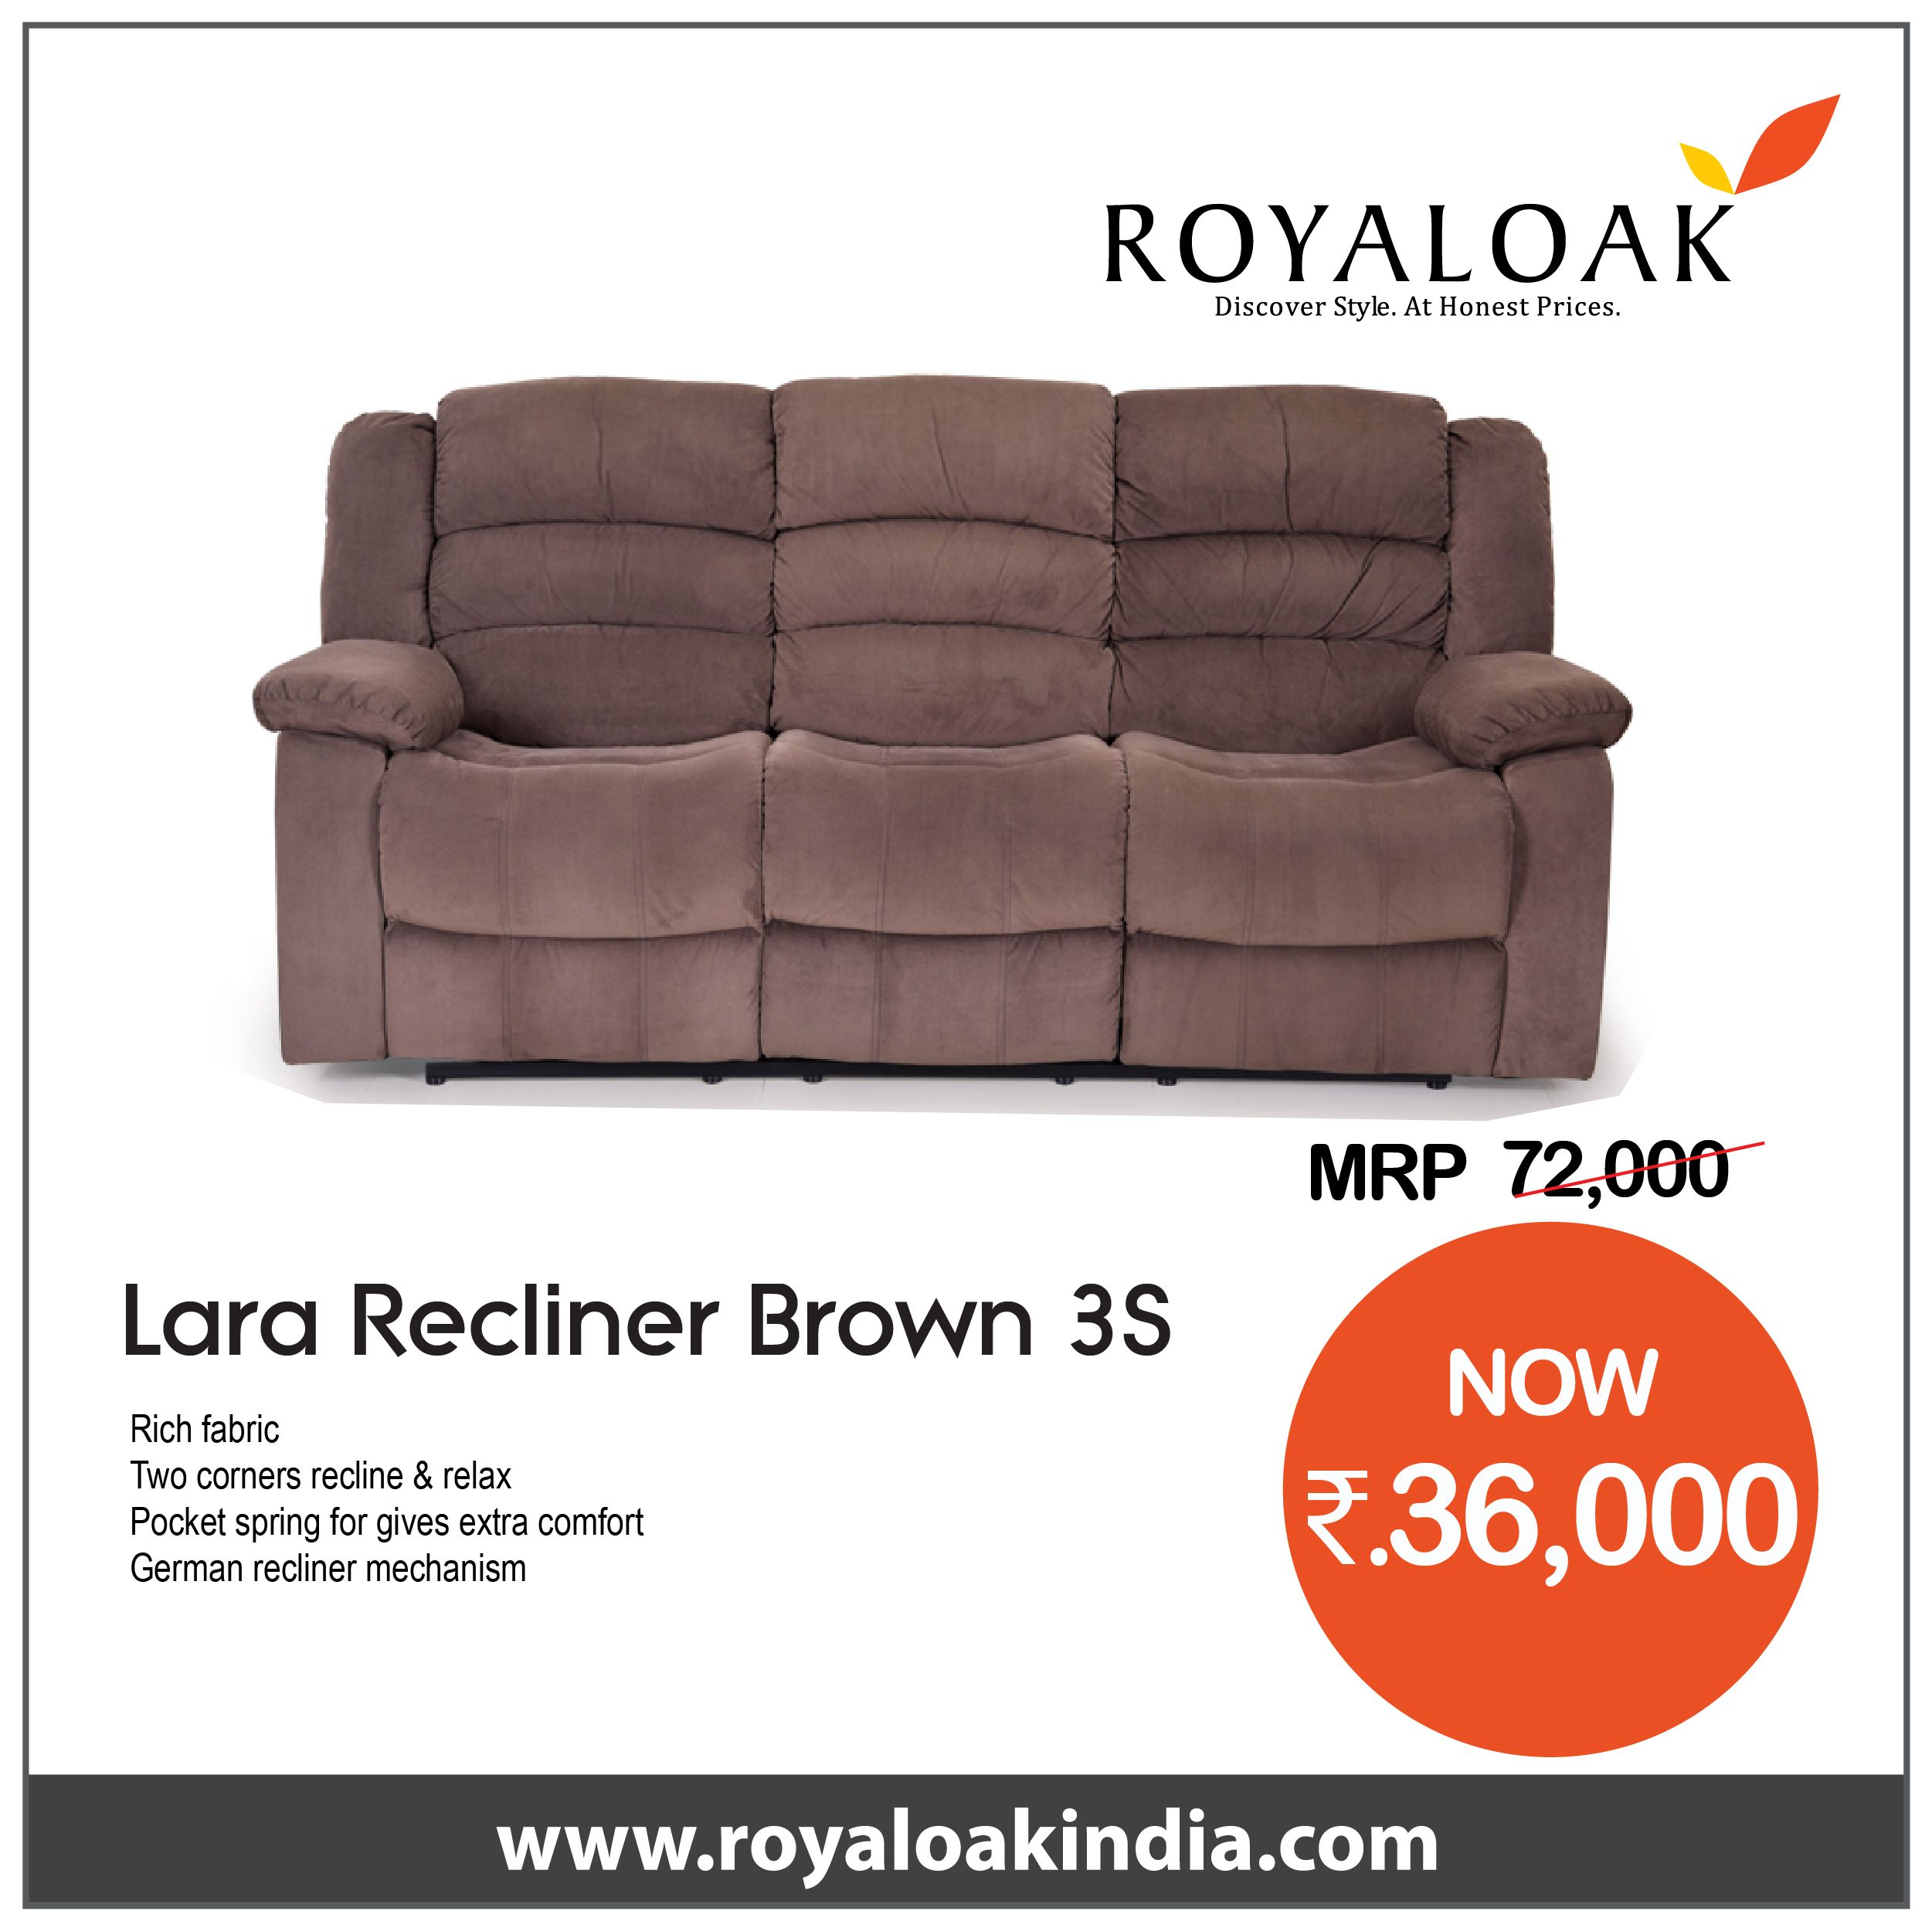 Pin By Royaloak Furniture On Royaloak Three Seater Recliner Rich Fabric Recliner Leather Fabric